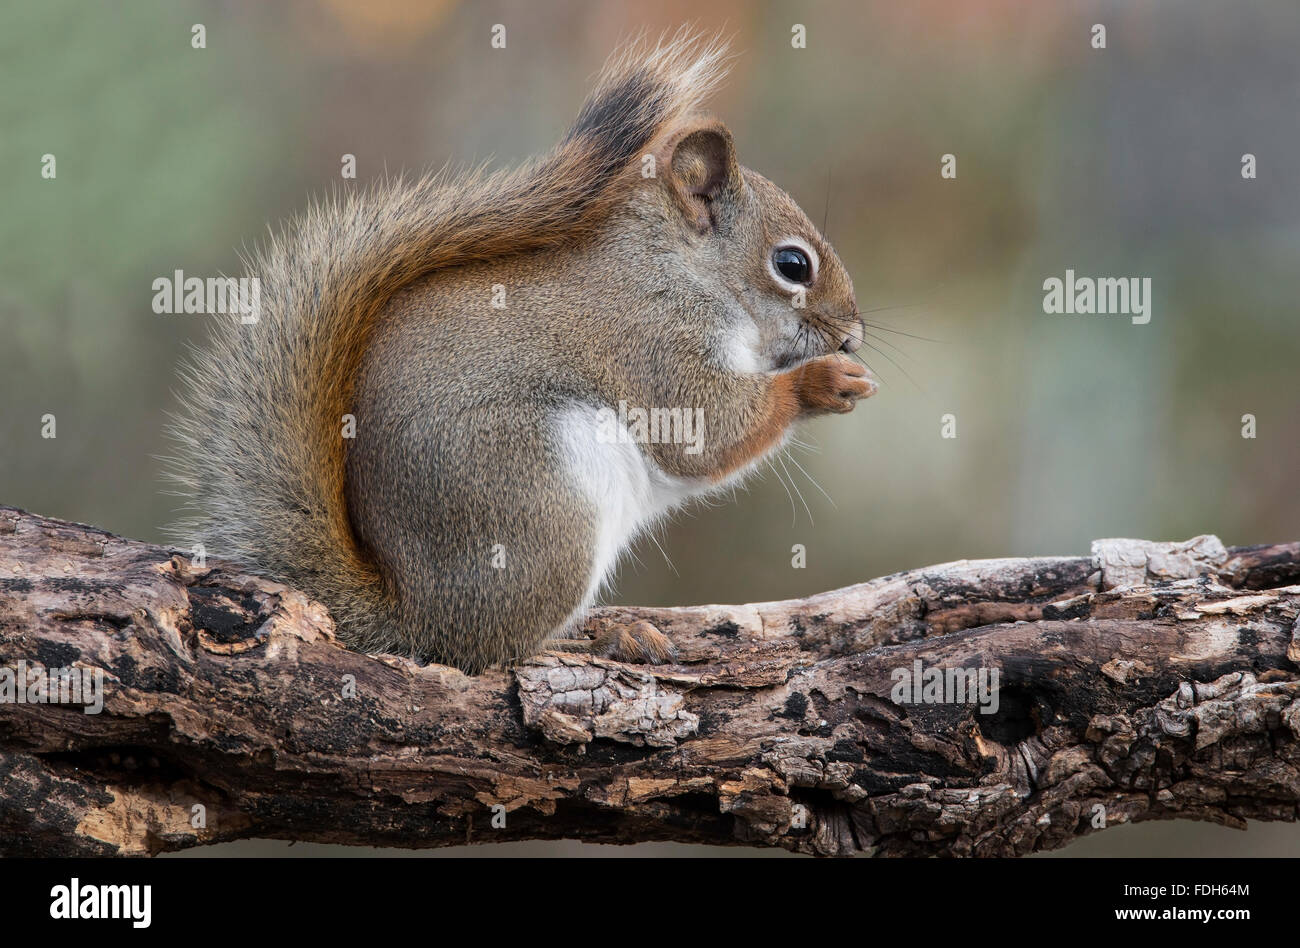 Eastern Red Squirrel eating seeds (Tamiasciurus or Sciurus hudsonicus) E North America - Stock Image